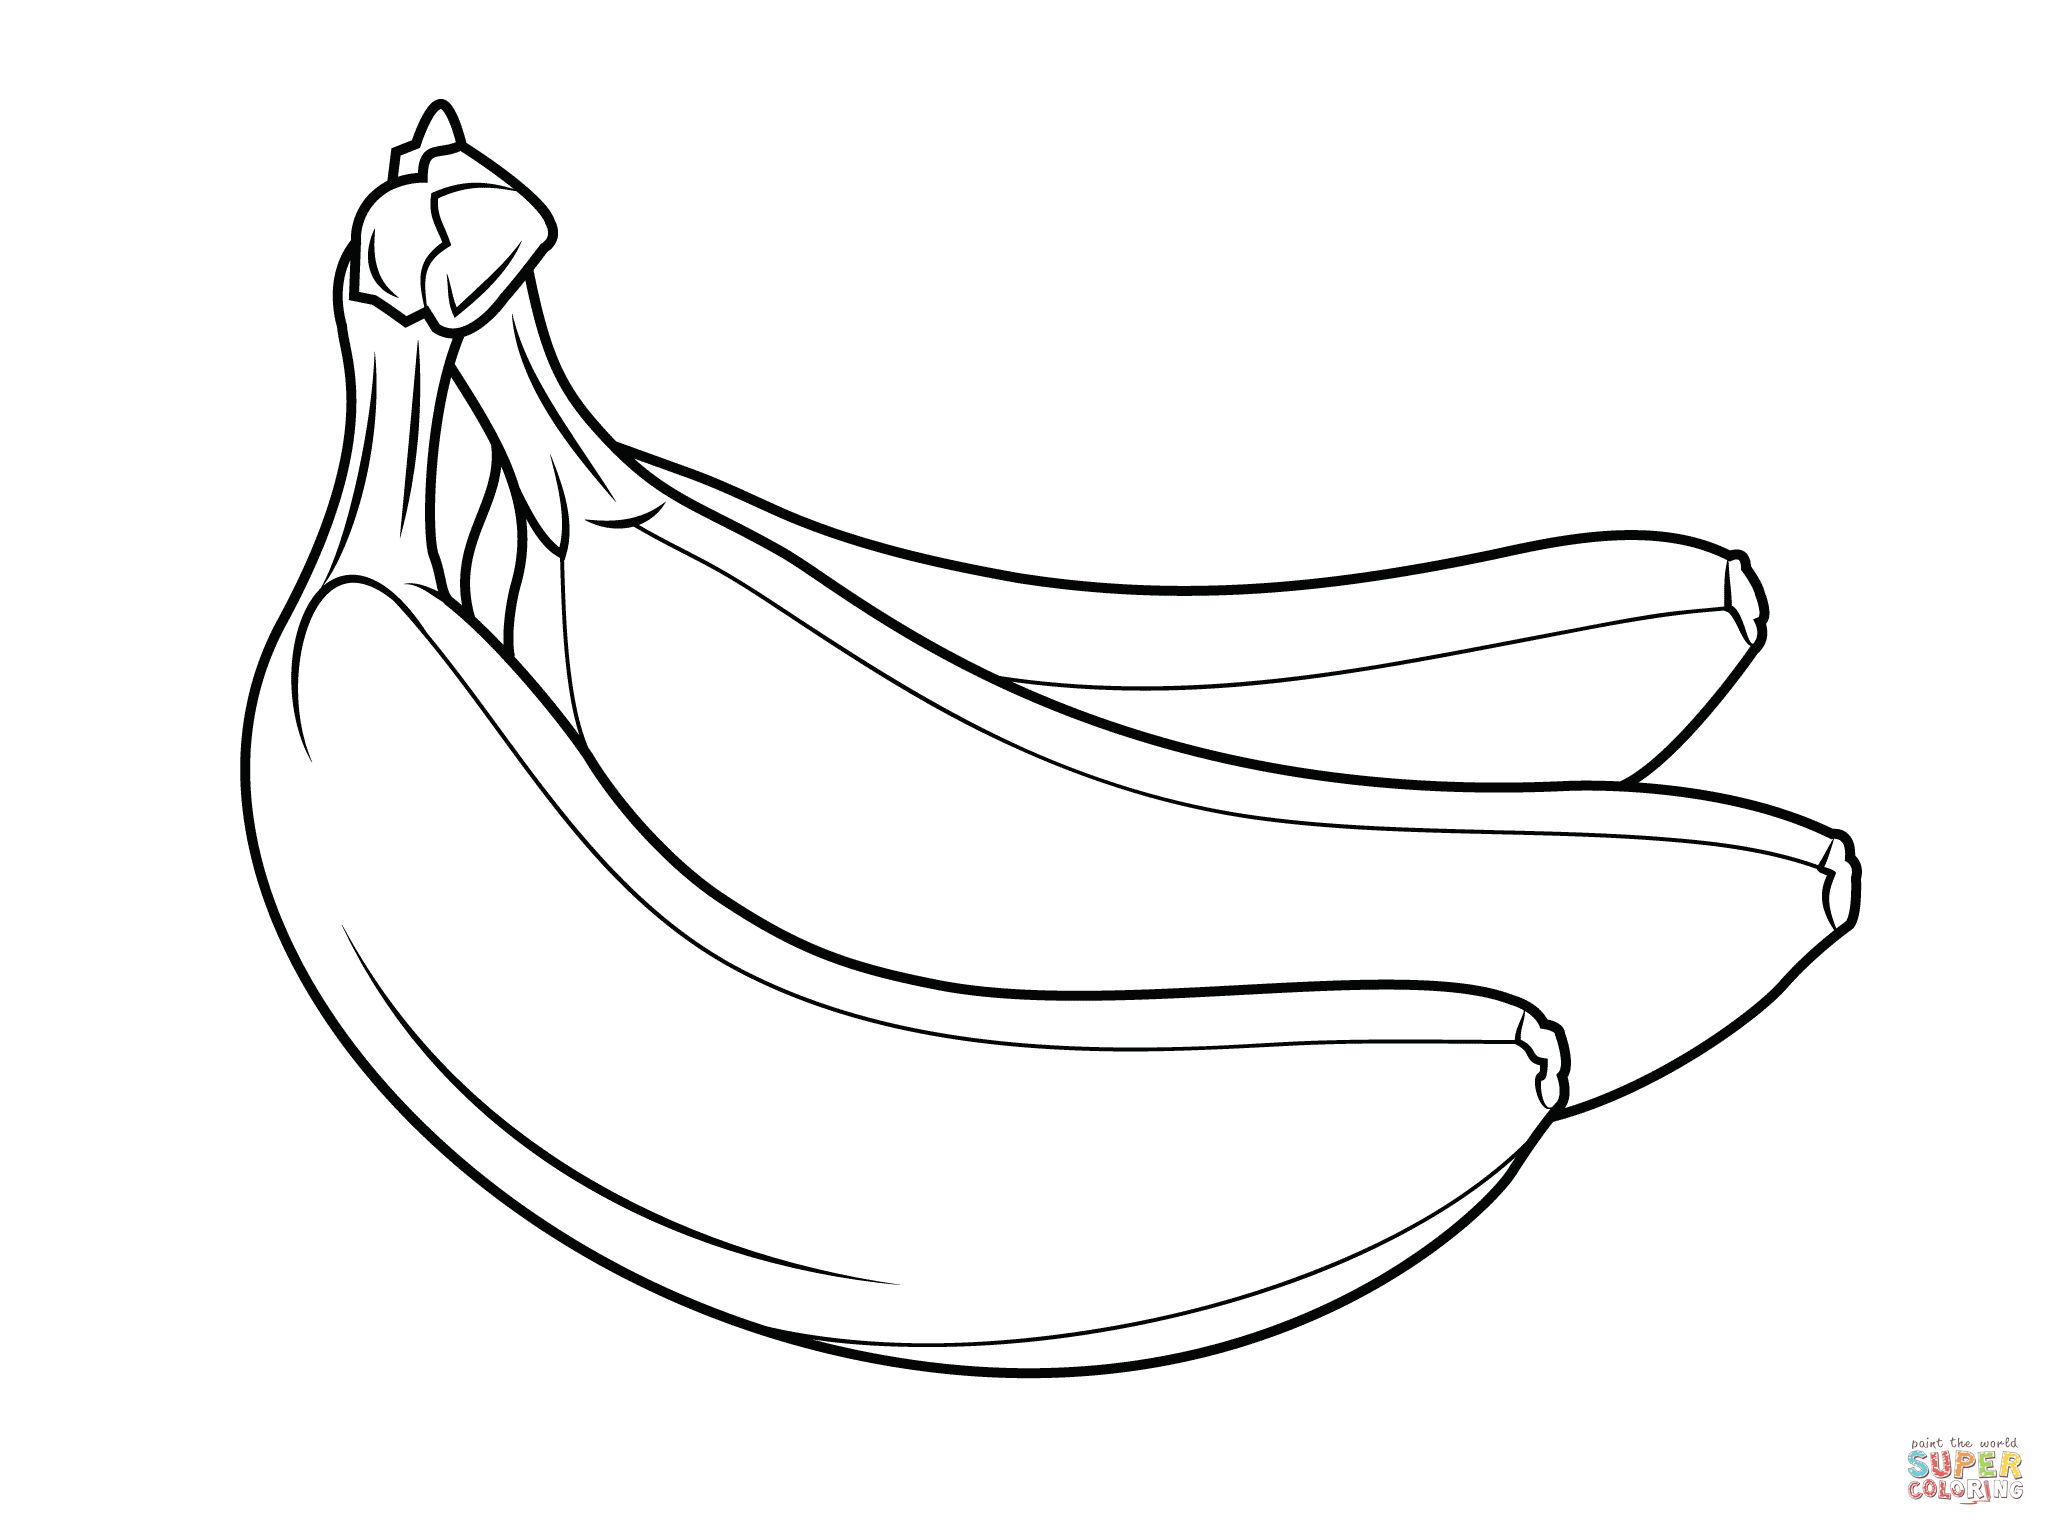 Banana clipart blank Of Coloring bananas Bunch Pages